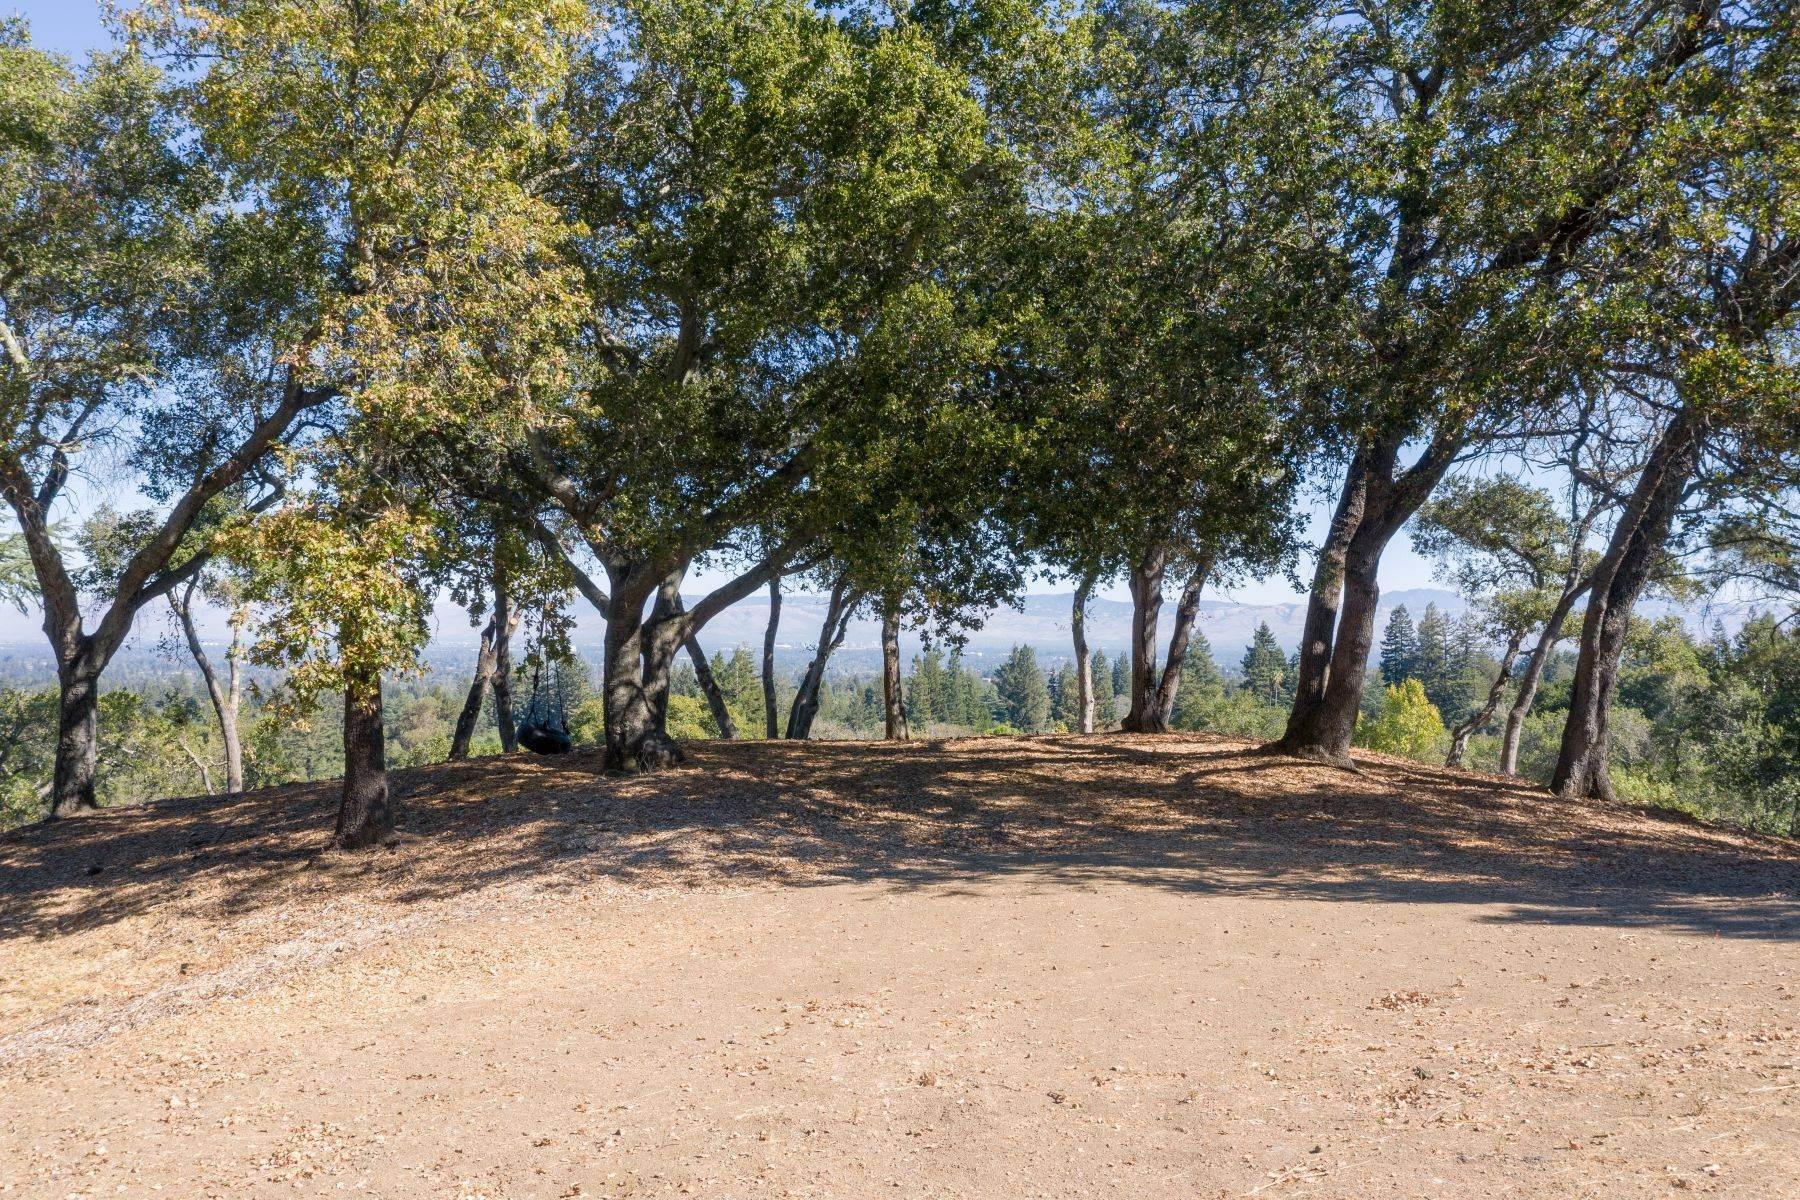 11. Land for Sale at 15400 Madrone Hill Road, Saratoga 15400 Madrone Hill Road Saratoga, California 95070 United States